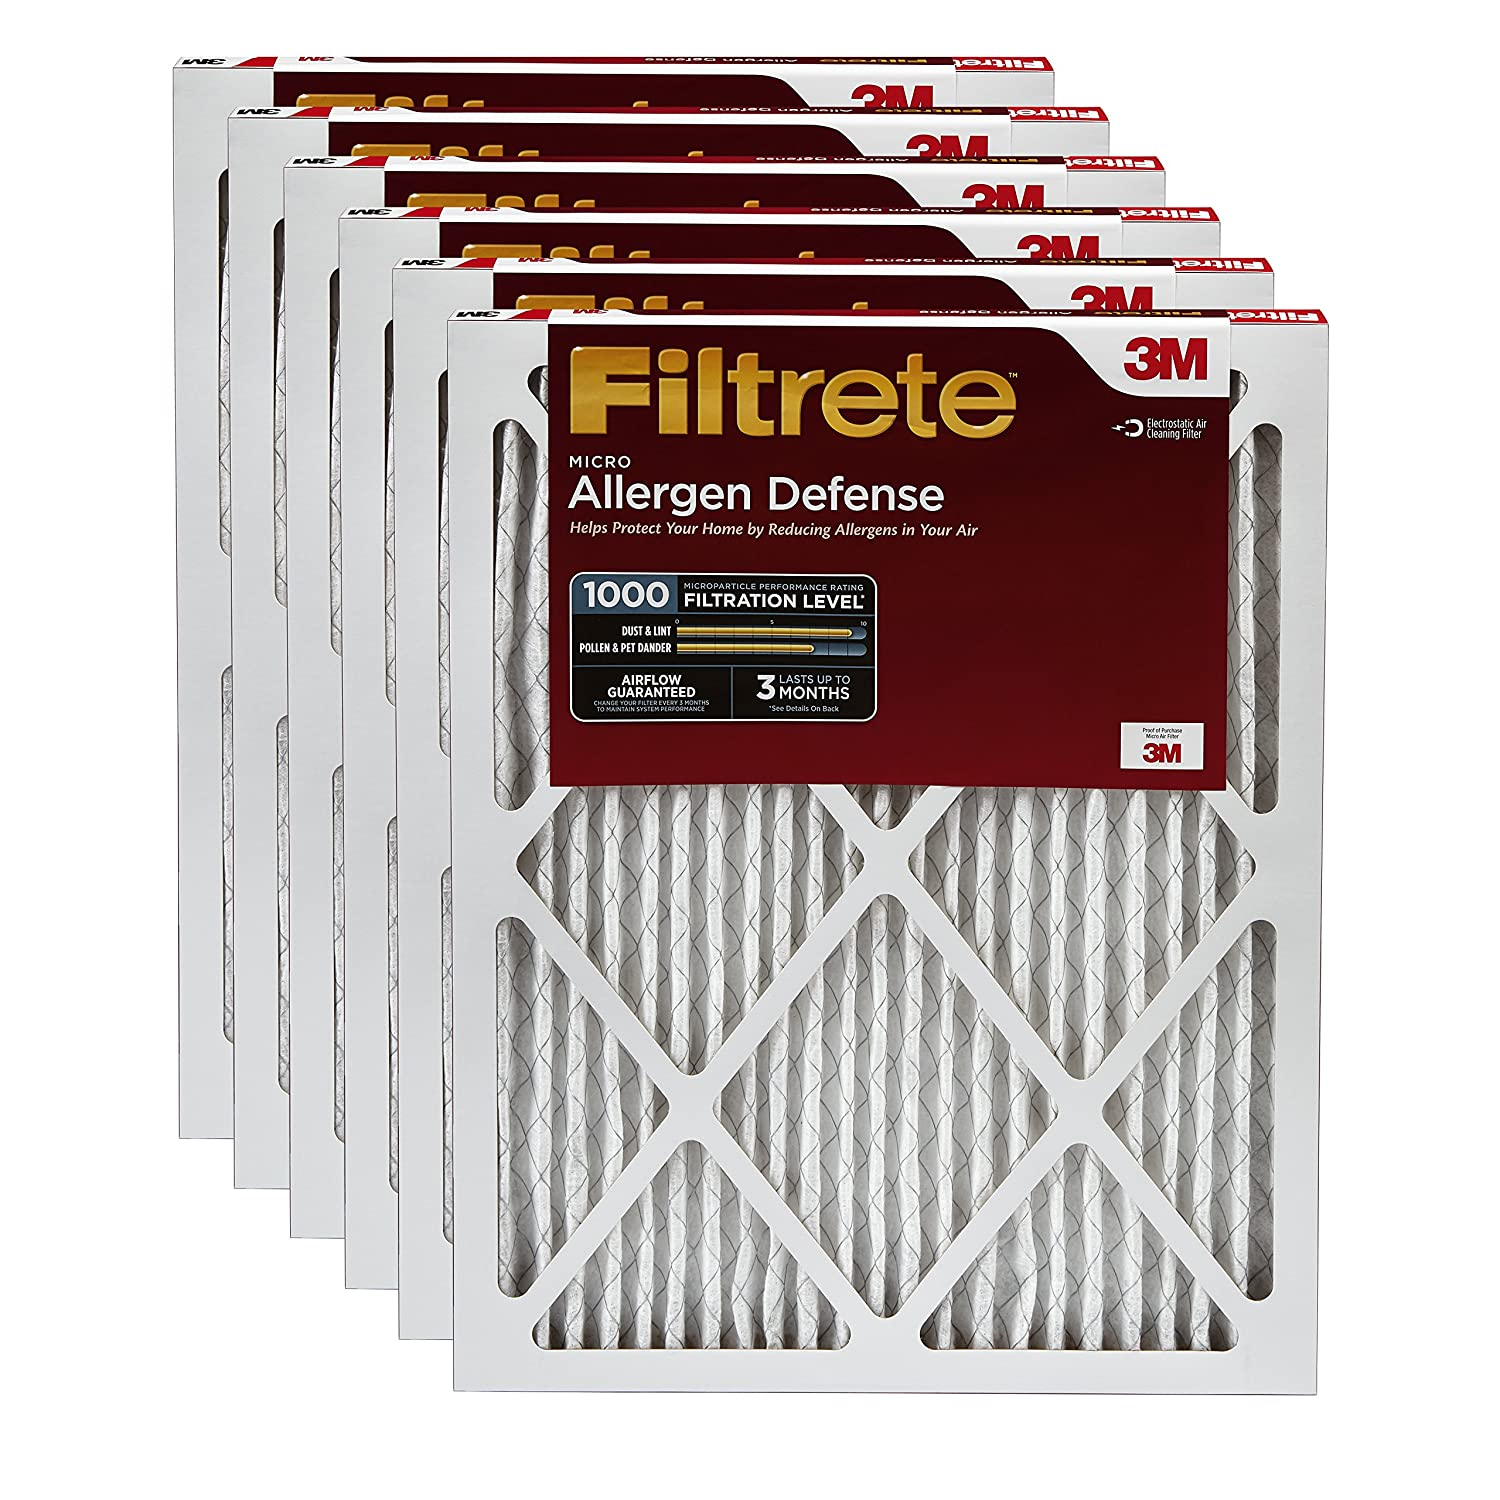 Filtrete Mpr 1000 16 X 25 1 Micro Allergen Defense Hvac Air Filter 3m Thermostat Wiring Diagram 6 Pack Replacement Furnace Filters